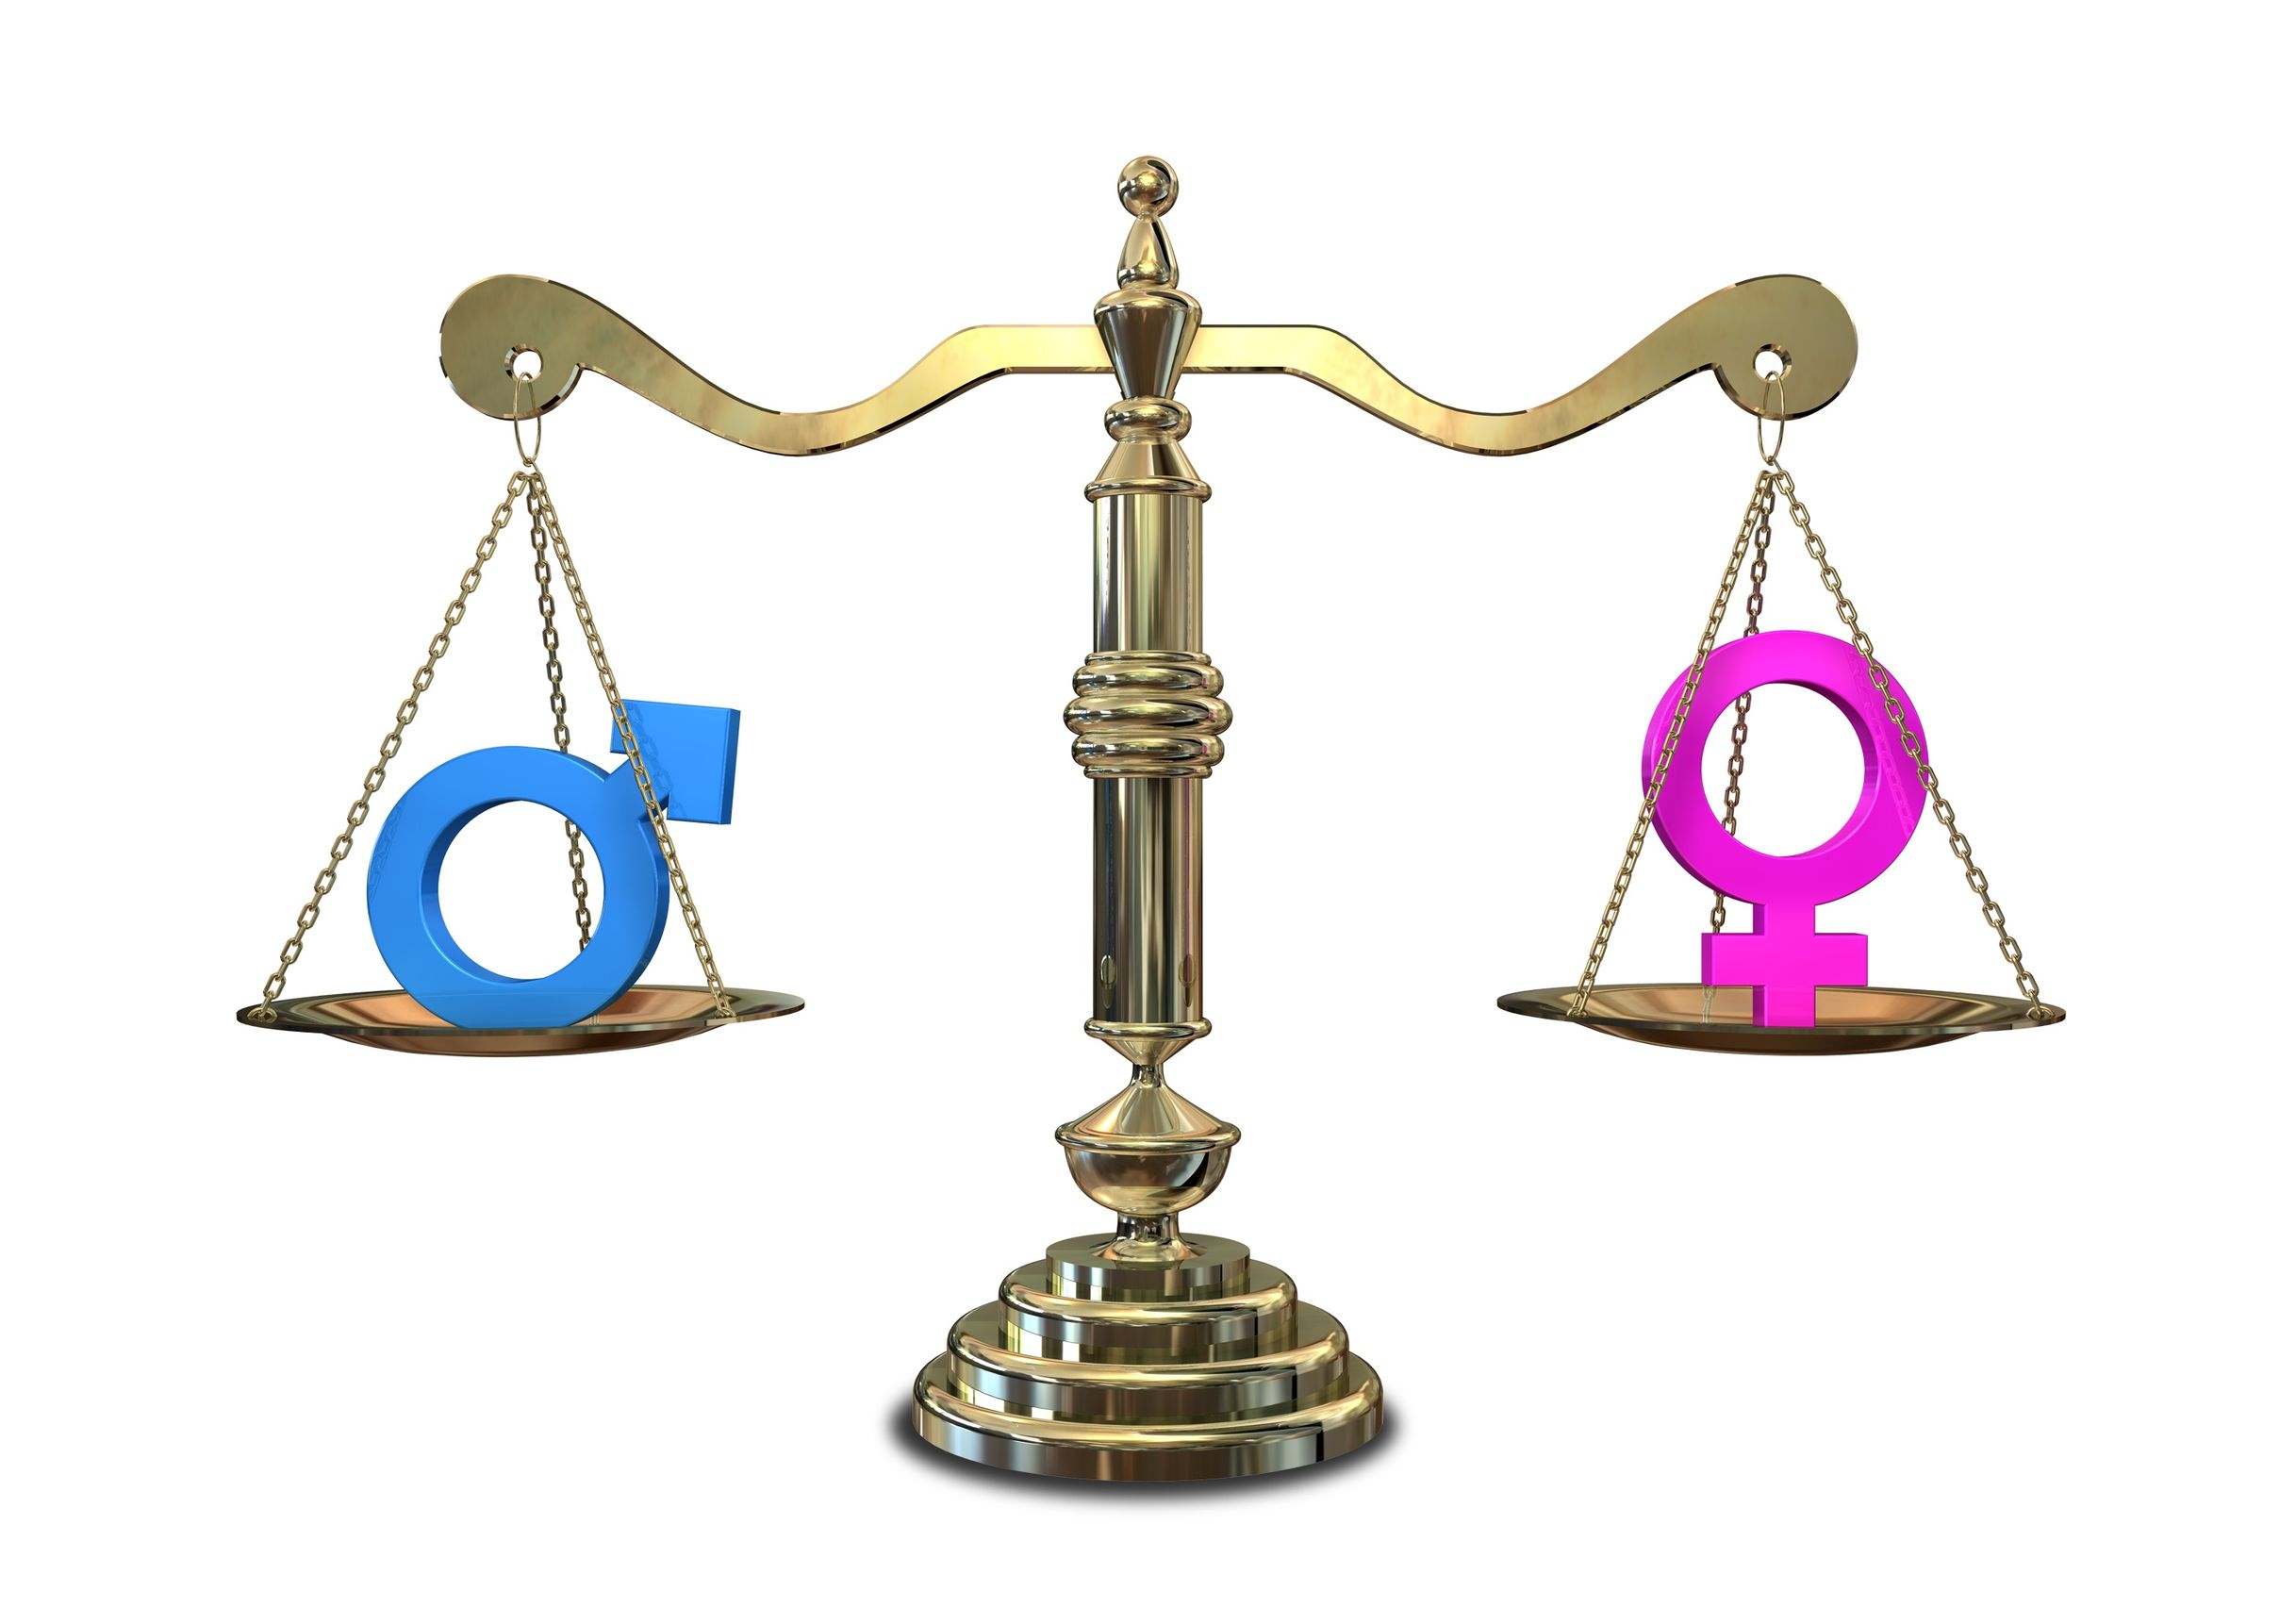 14021177 - a gold justice scale with the two different gender symbols on either side balancing each other out